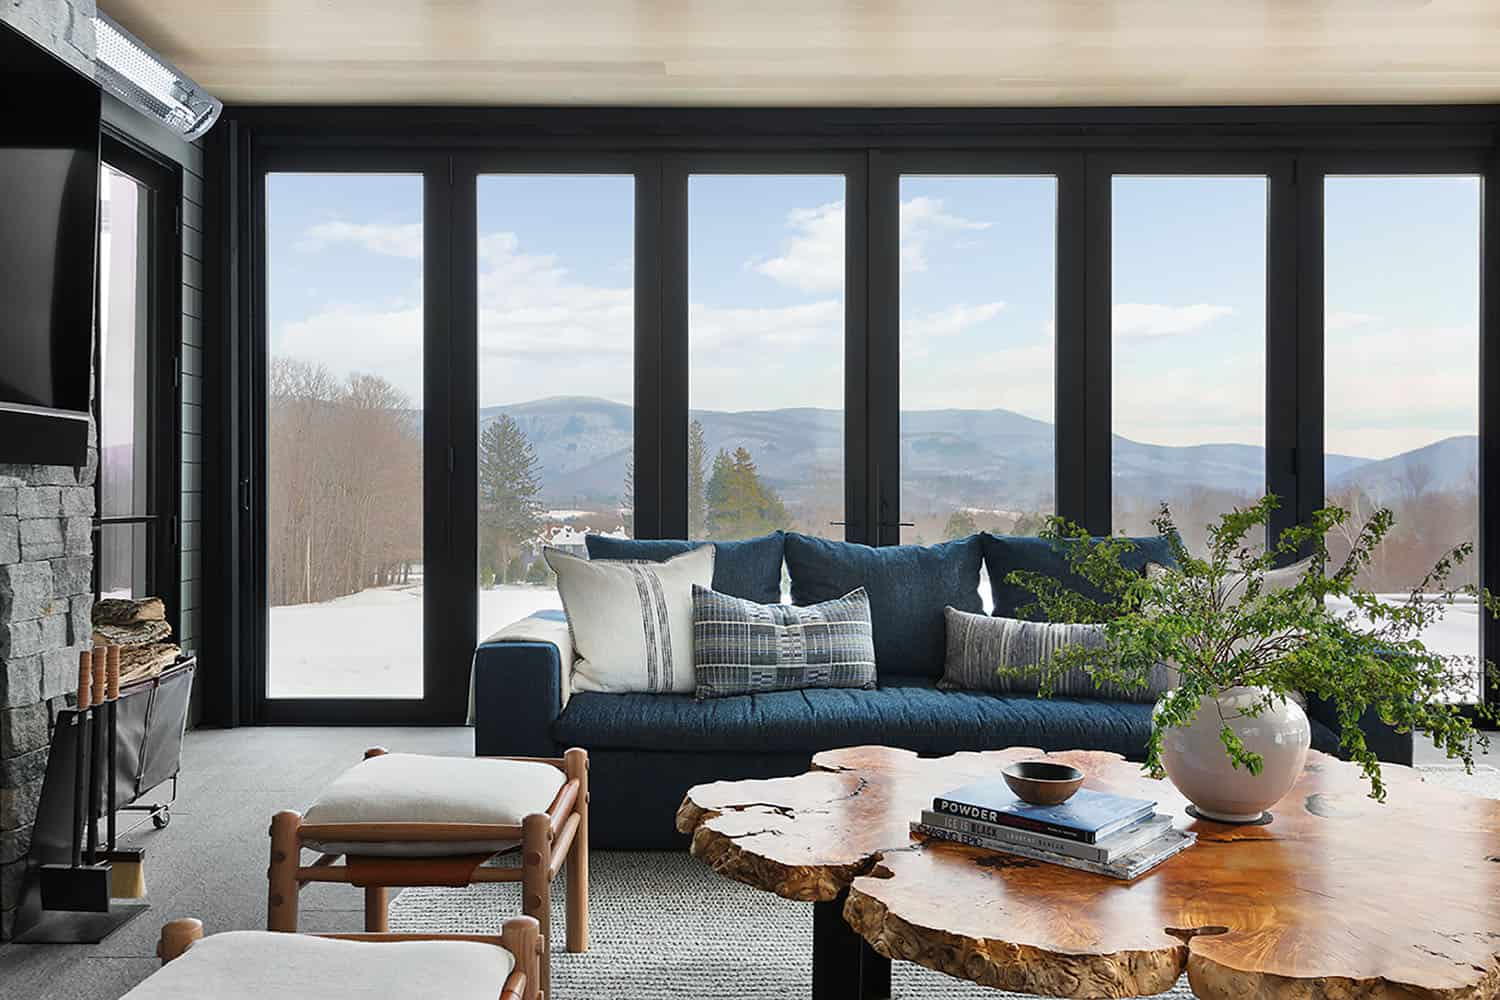 Luxurious mountainside retreat boasts breathtaking views of the Berkshires